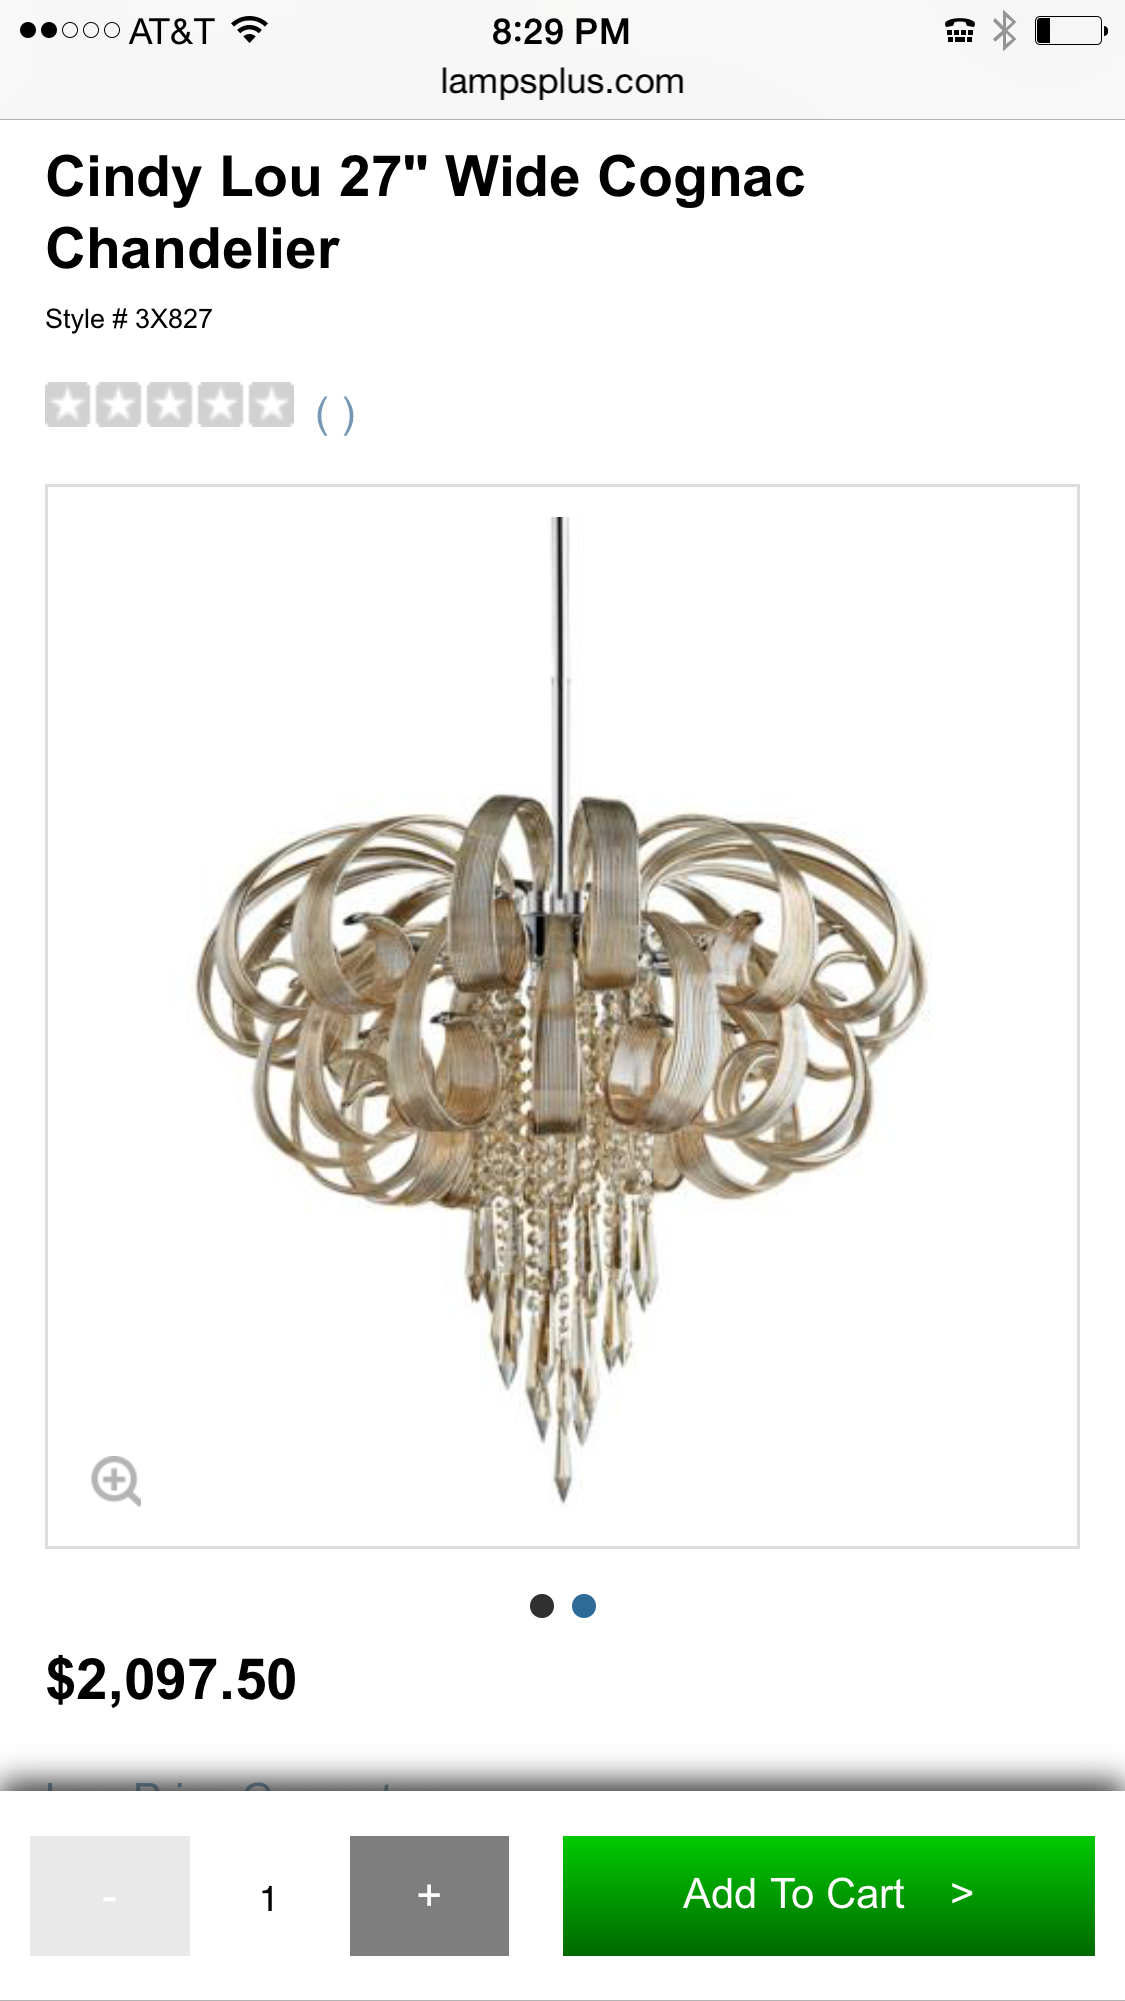 interior homescapes offers the cindy lou who chandelier by cyan design visit our online store to order your cyan design products today - Cyan Canopy Interior